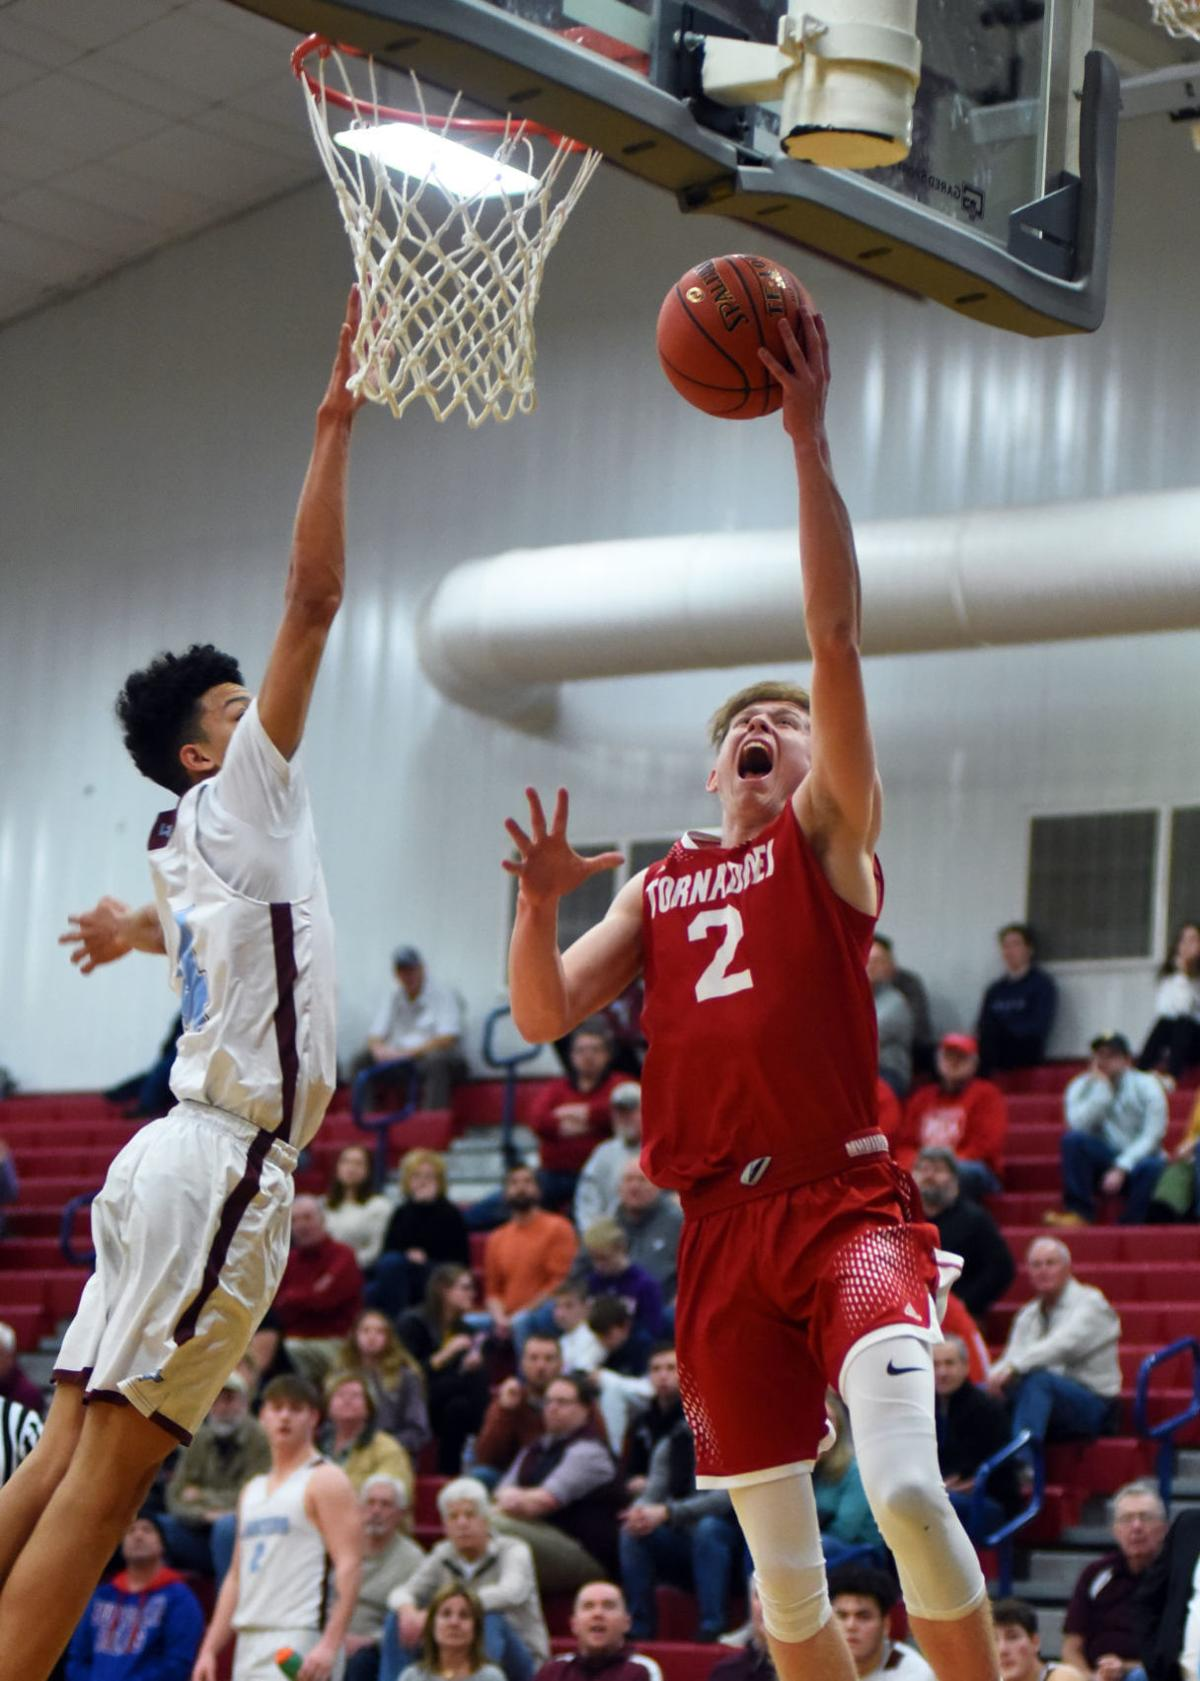 Mount Carmel drops out of PHAC tournament